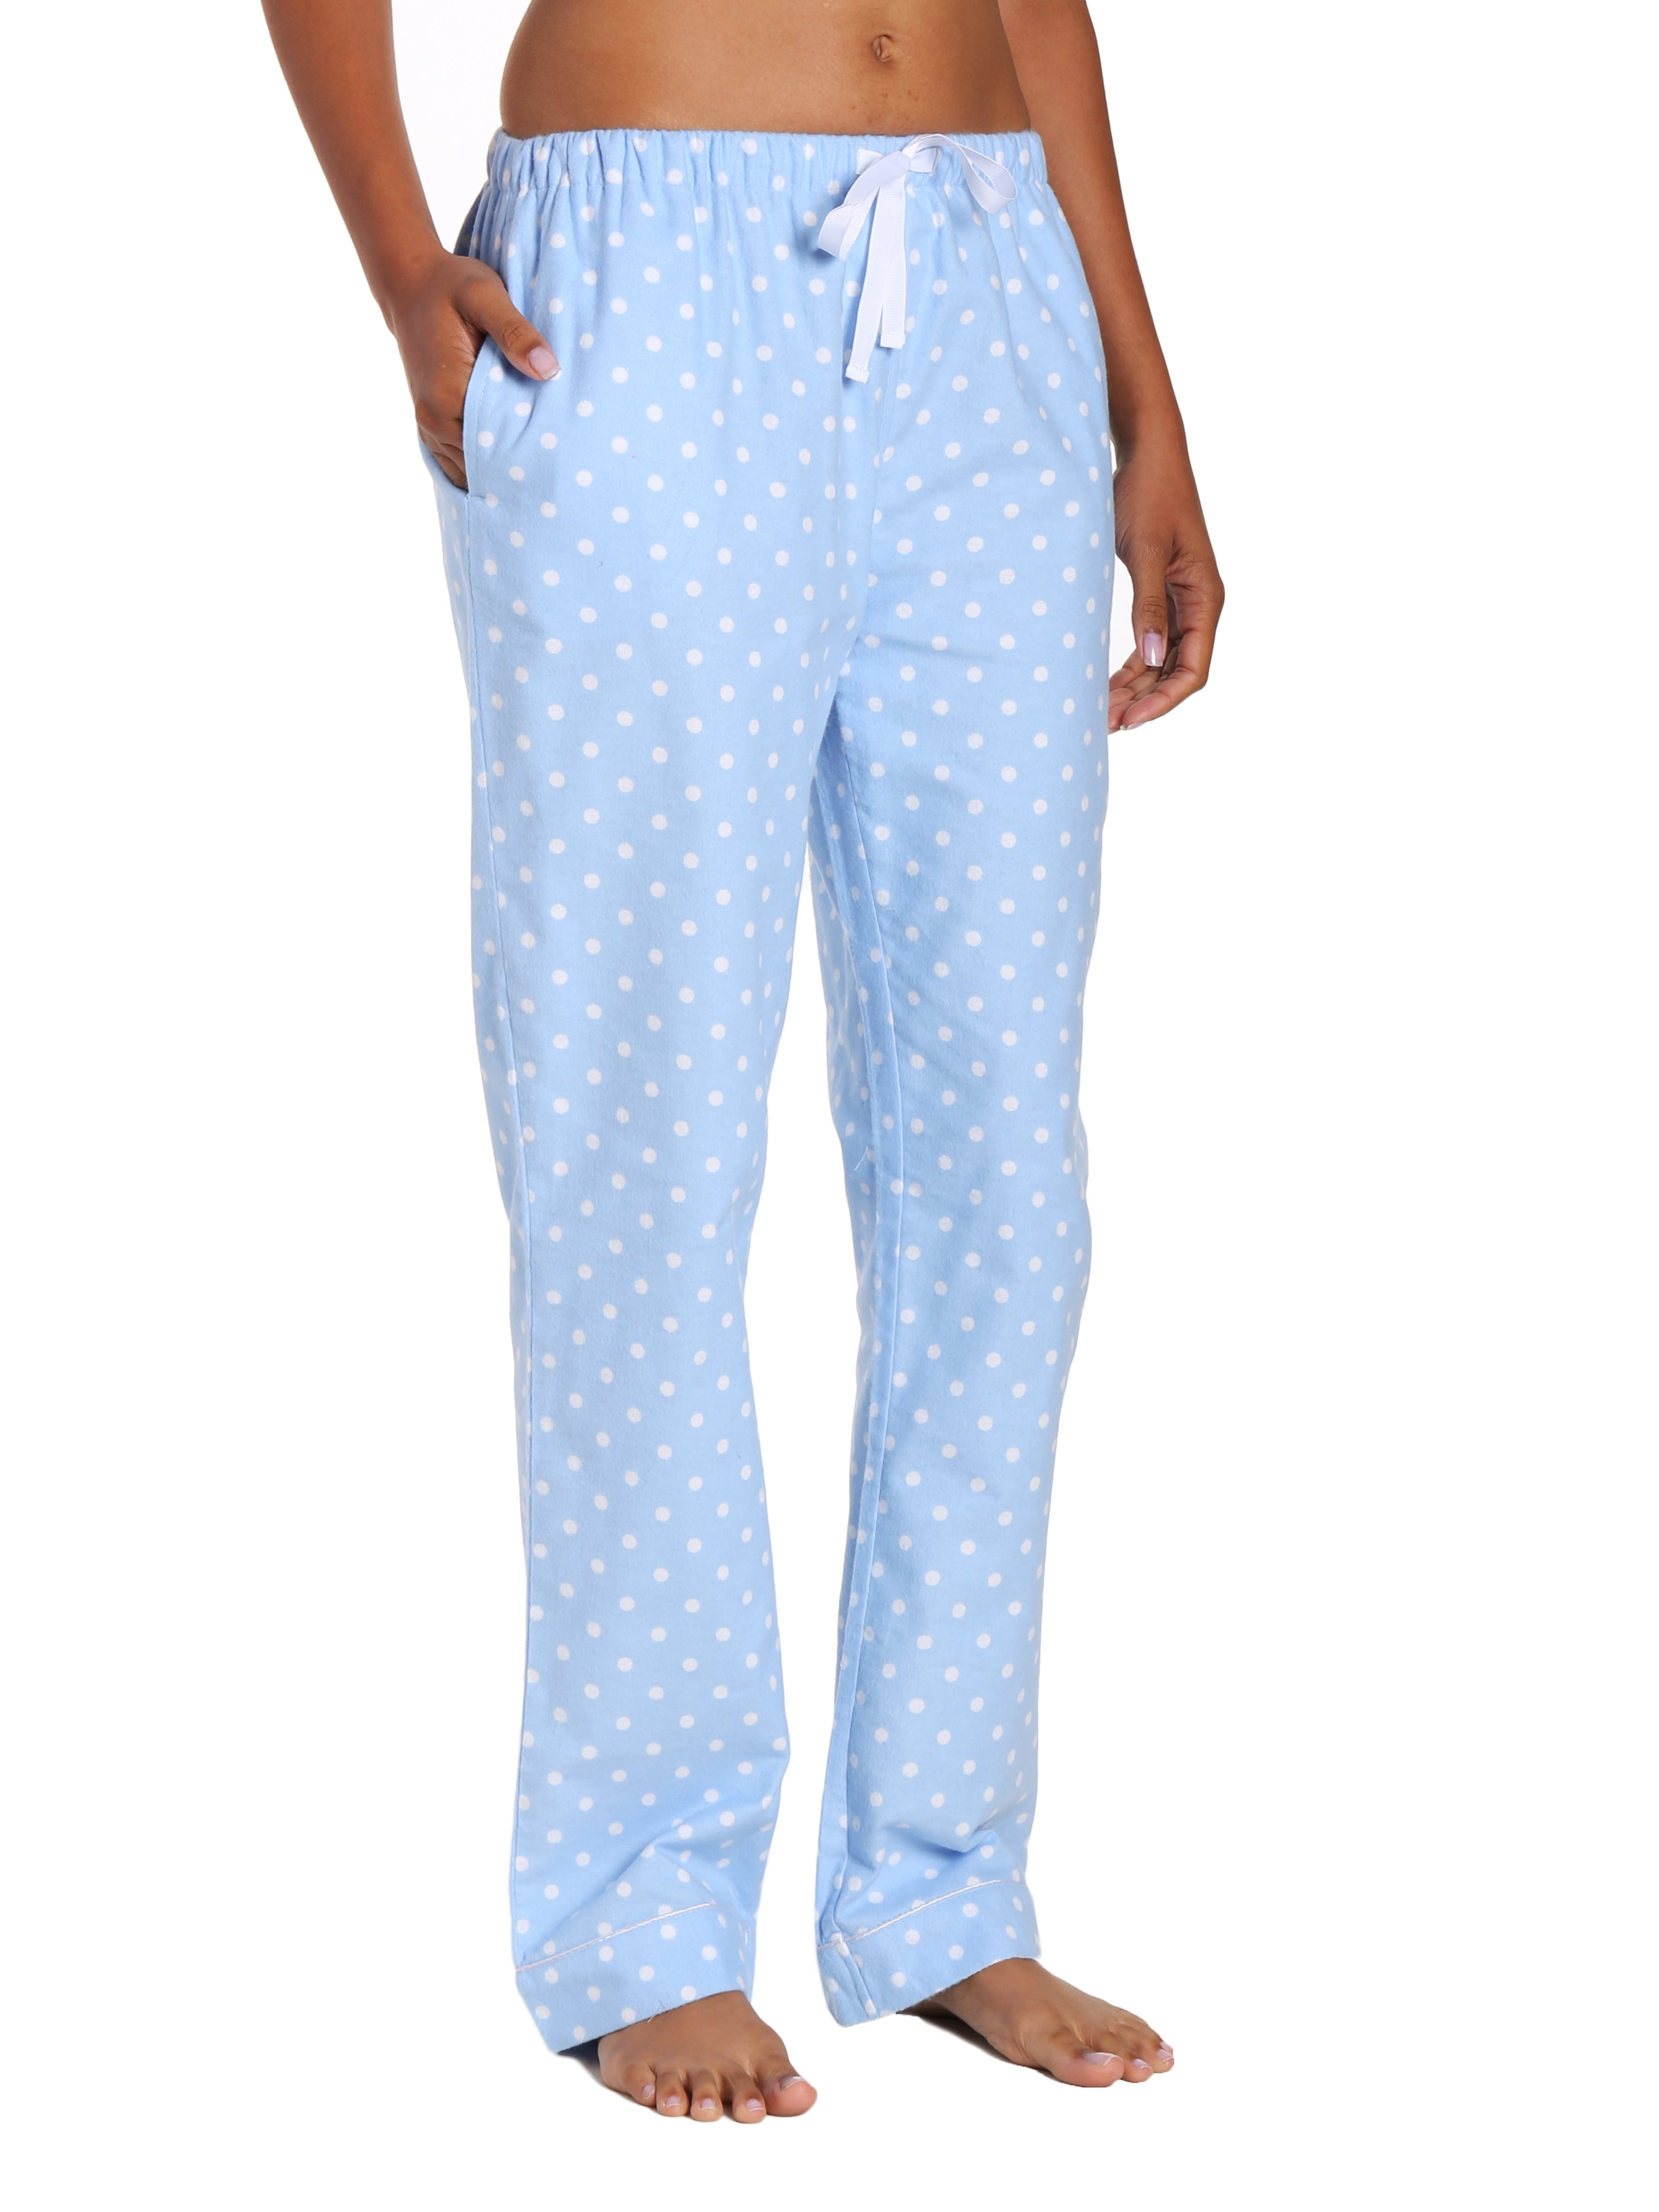 Womens 100% Cotton Flannel Lounge Pants - Dots Diva Blue-White